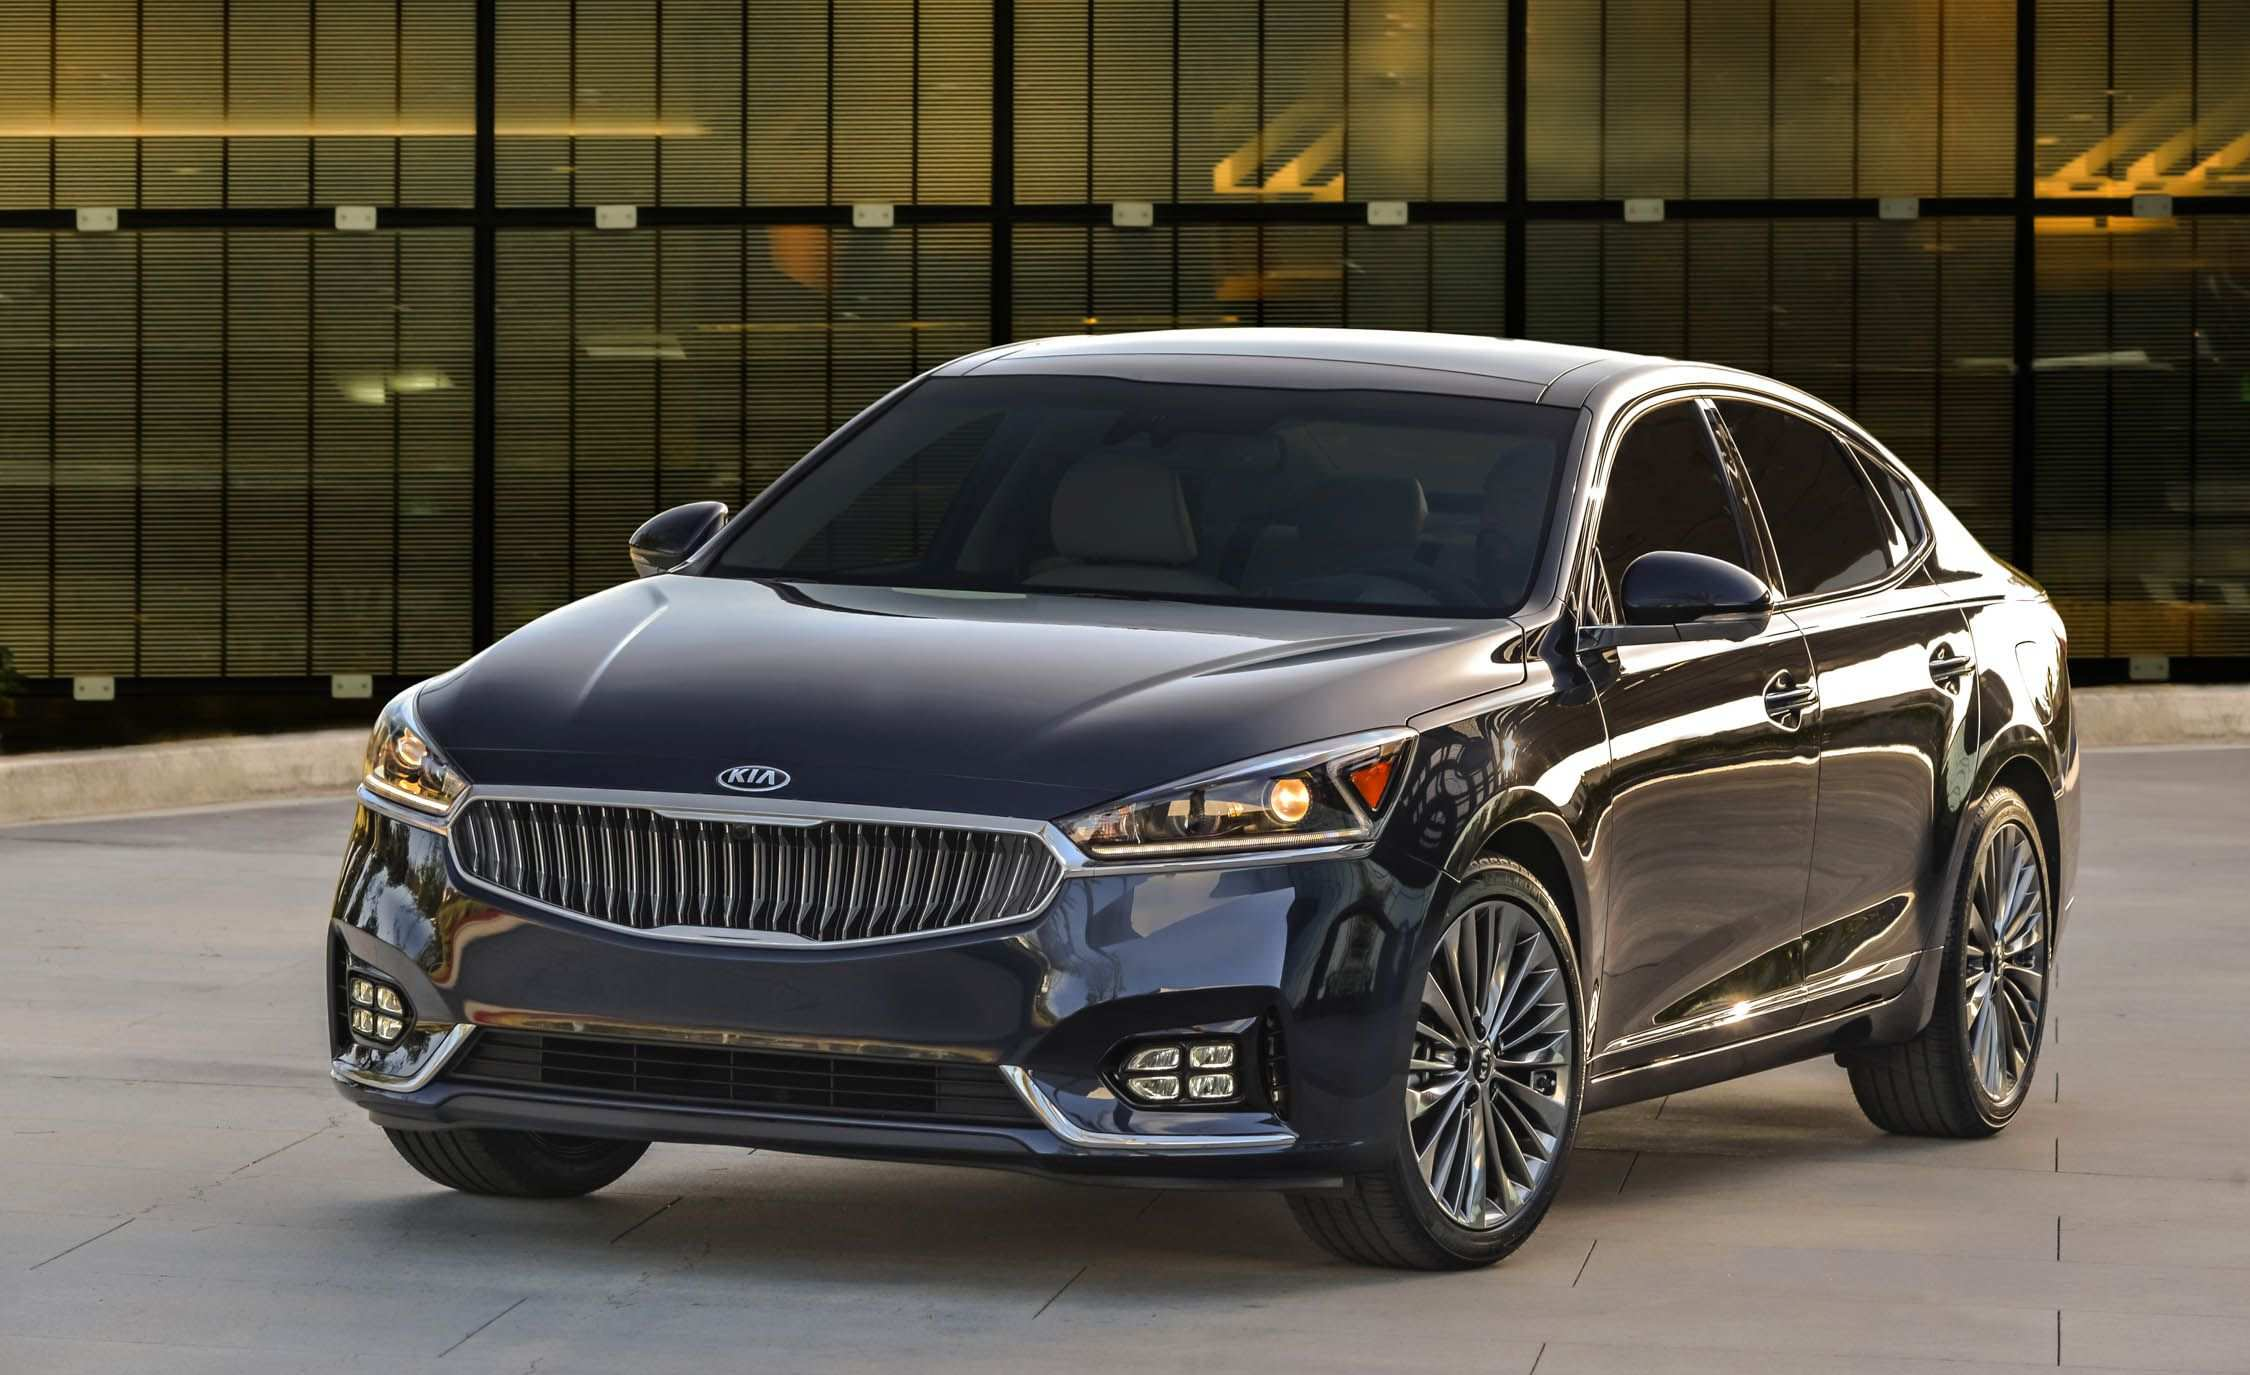 19 All New Best 2019 Kia Cadenza Limited Review Prices for Best 2019 Kia Cadenza Limited Review